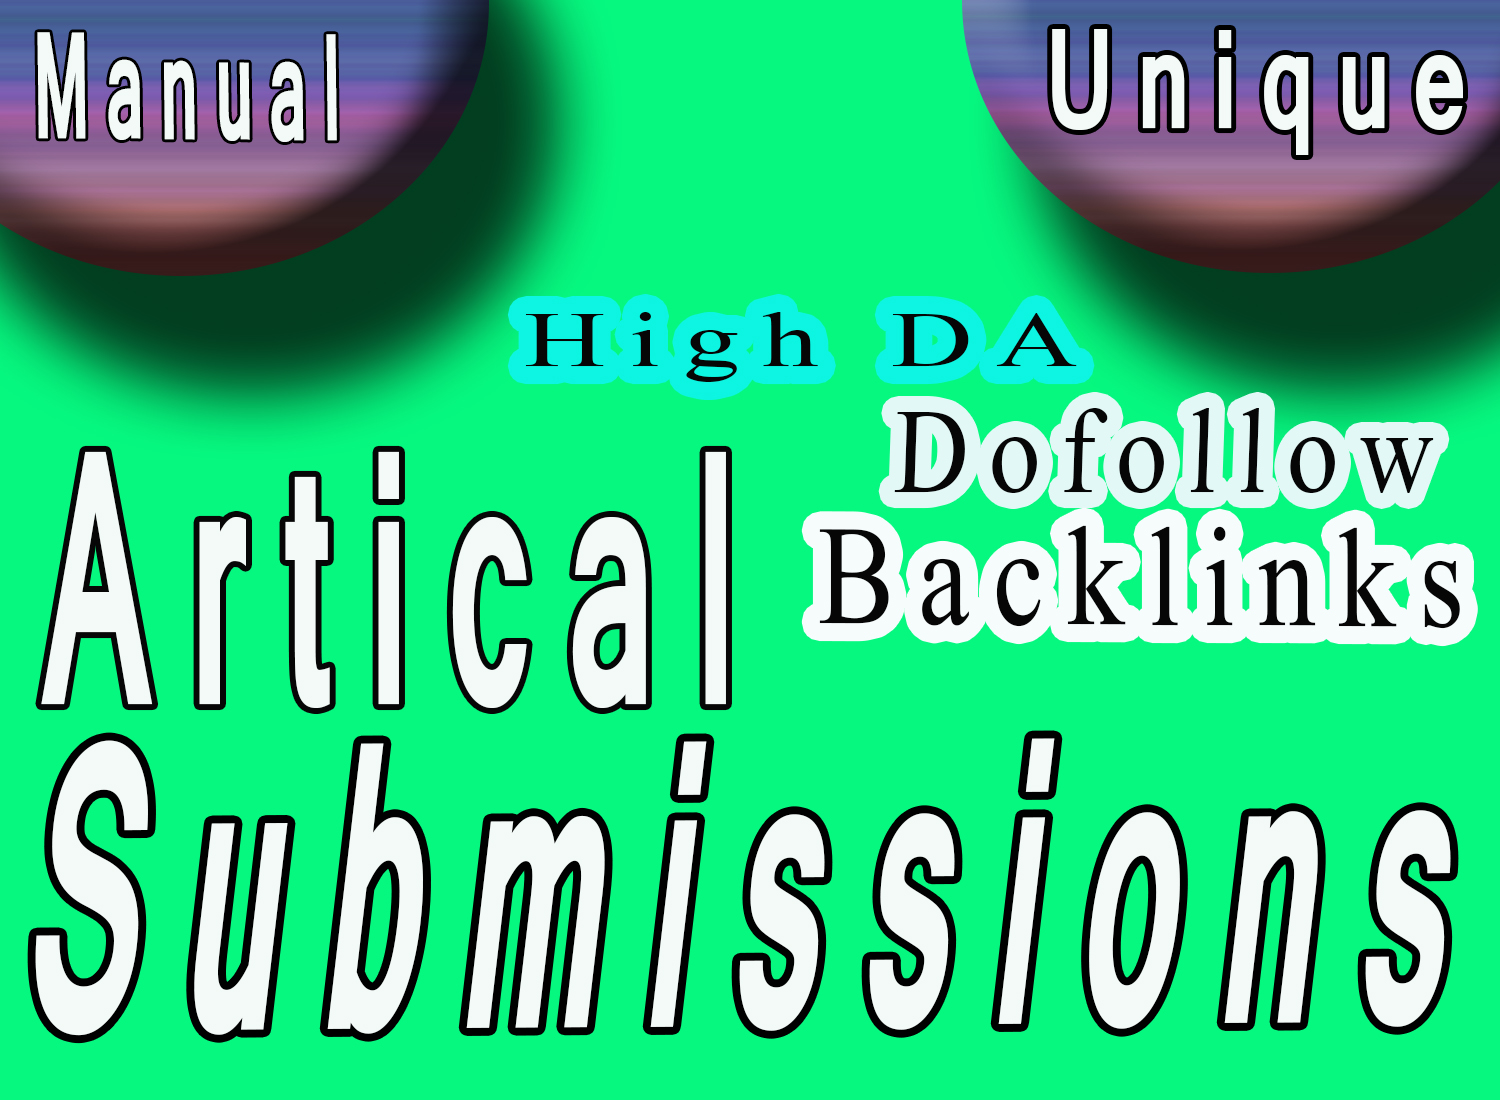 Manually done- 30 Article Submission with 60 dofollow backlinks from high DA sites